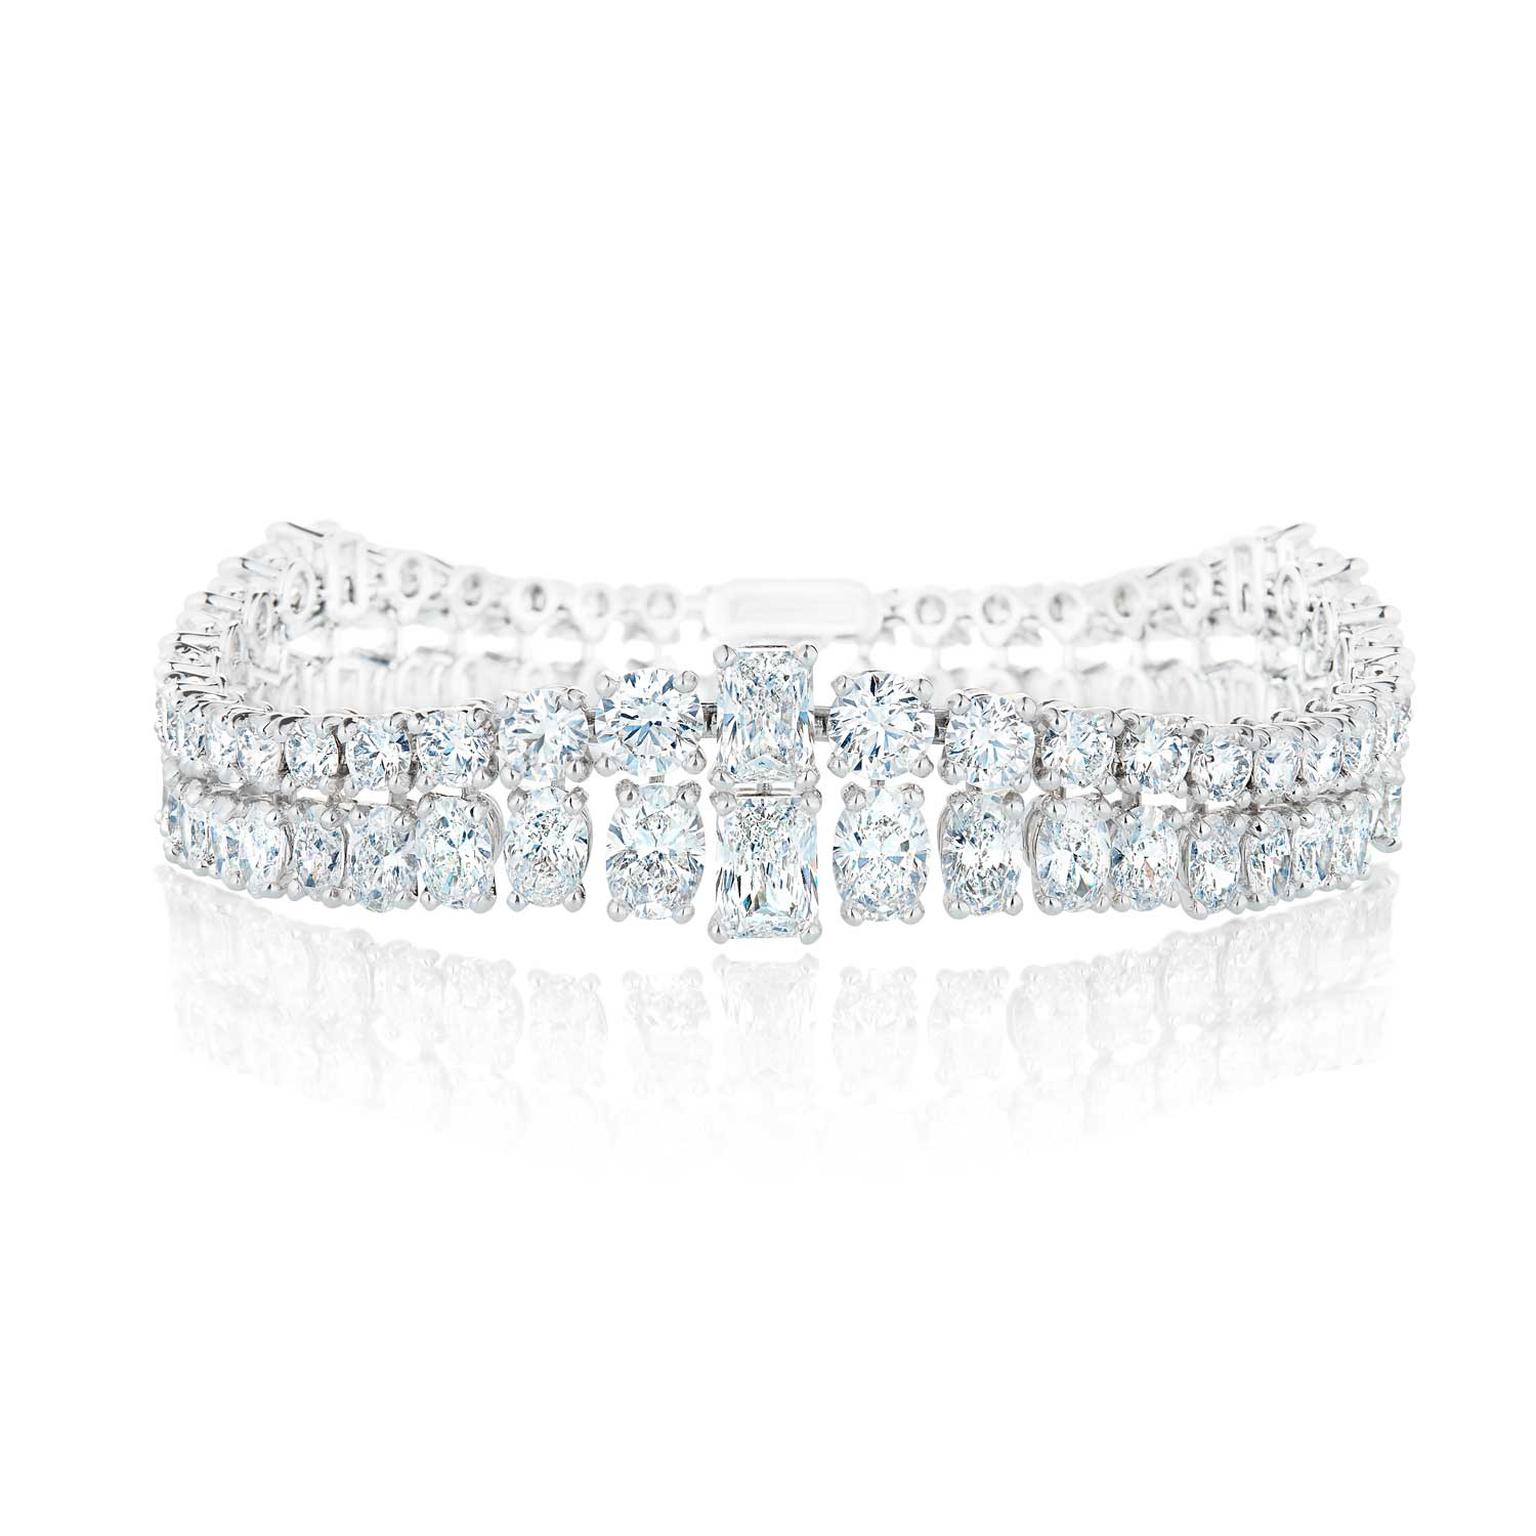 De Beers Albert Bridge diamond bracelet